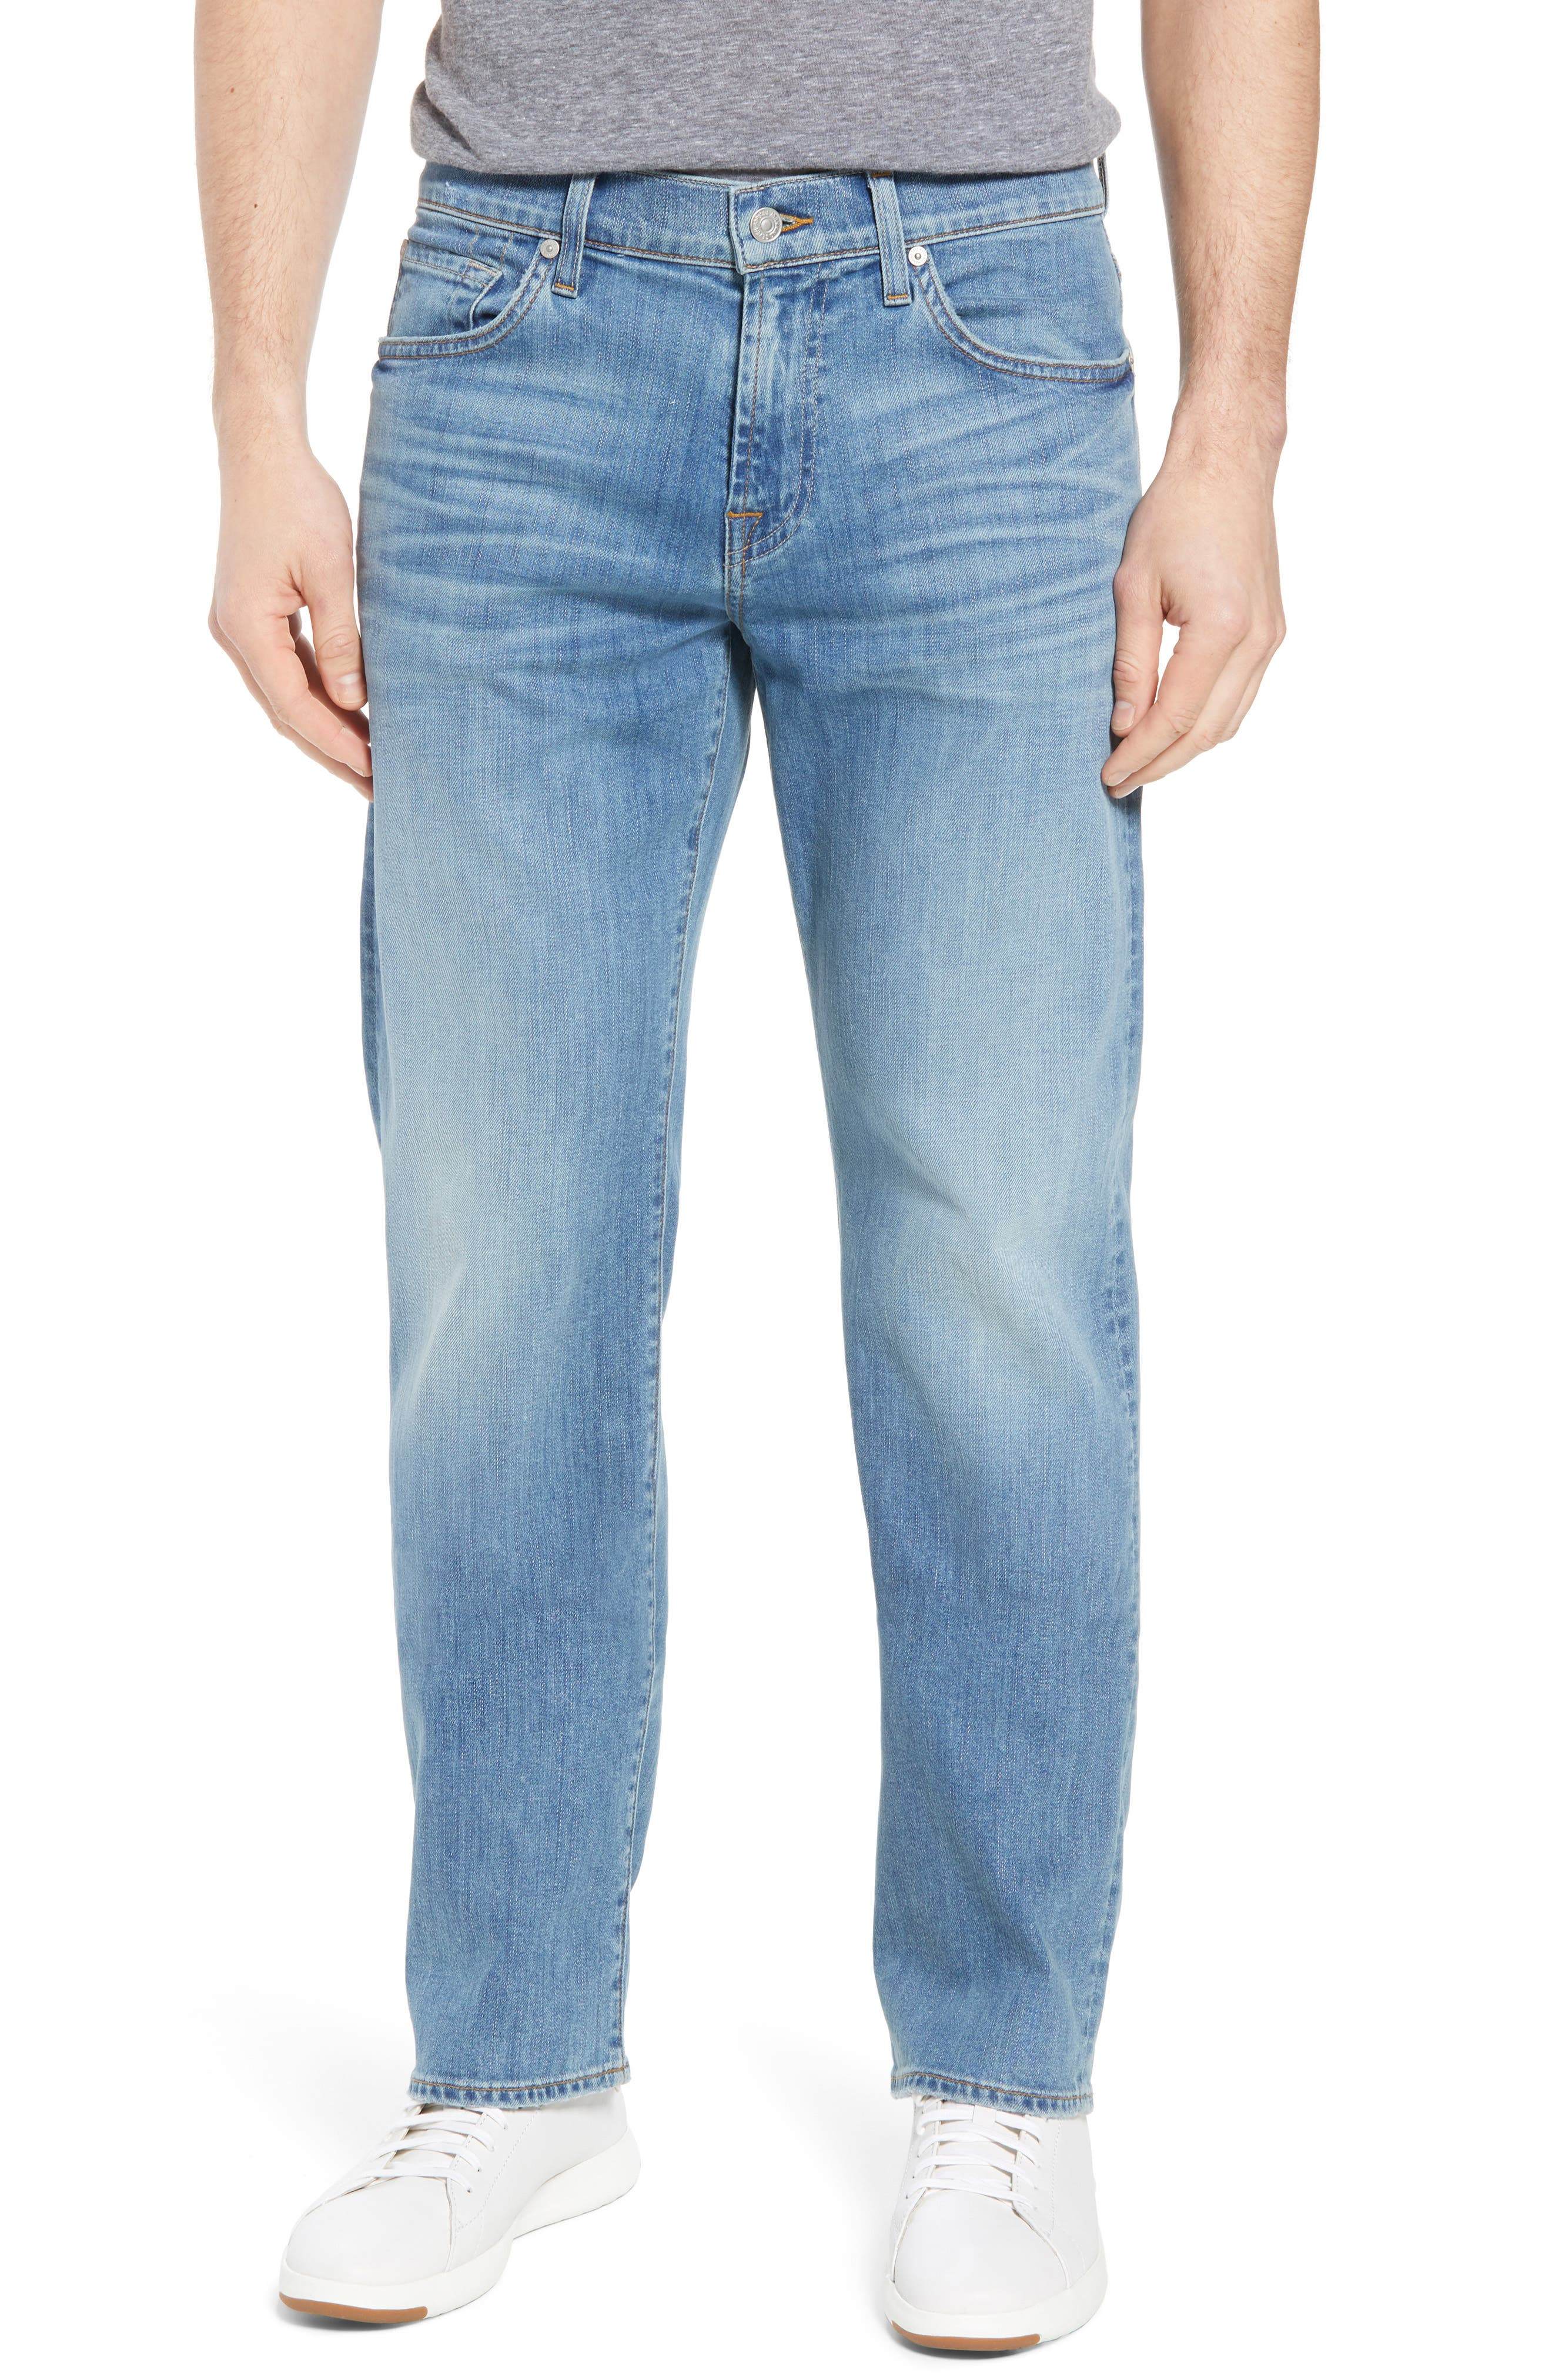 Austyn - Luxe Performance Relaxed Fit Jeans,                             Main thumbnail 1, color,                             Vahalla